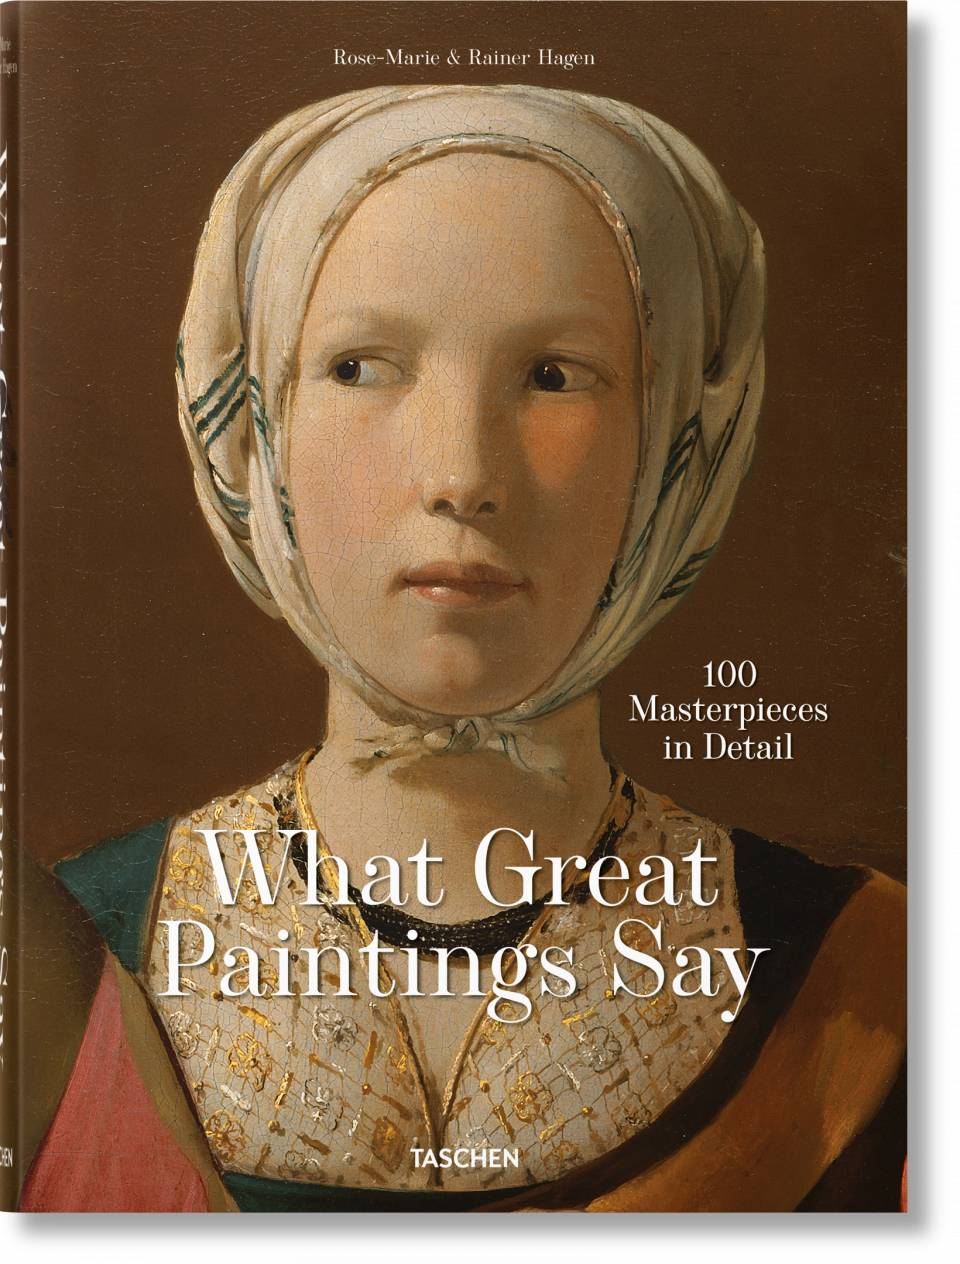 What Great Paintings Say. 100 Masterpieces in Detail - image 1